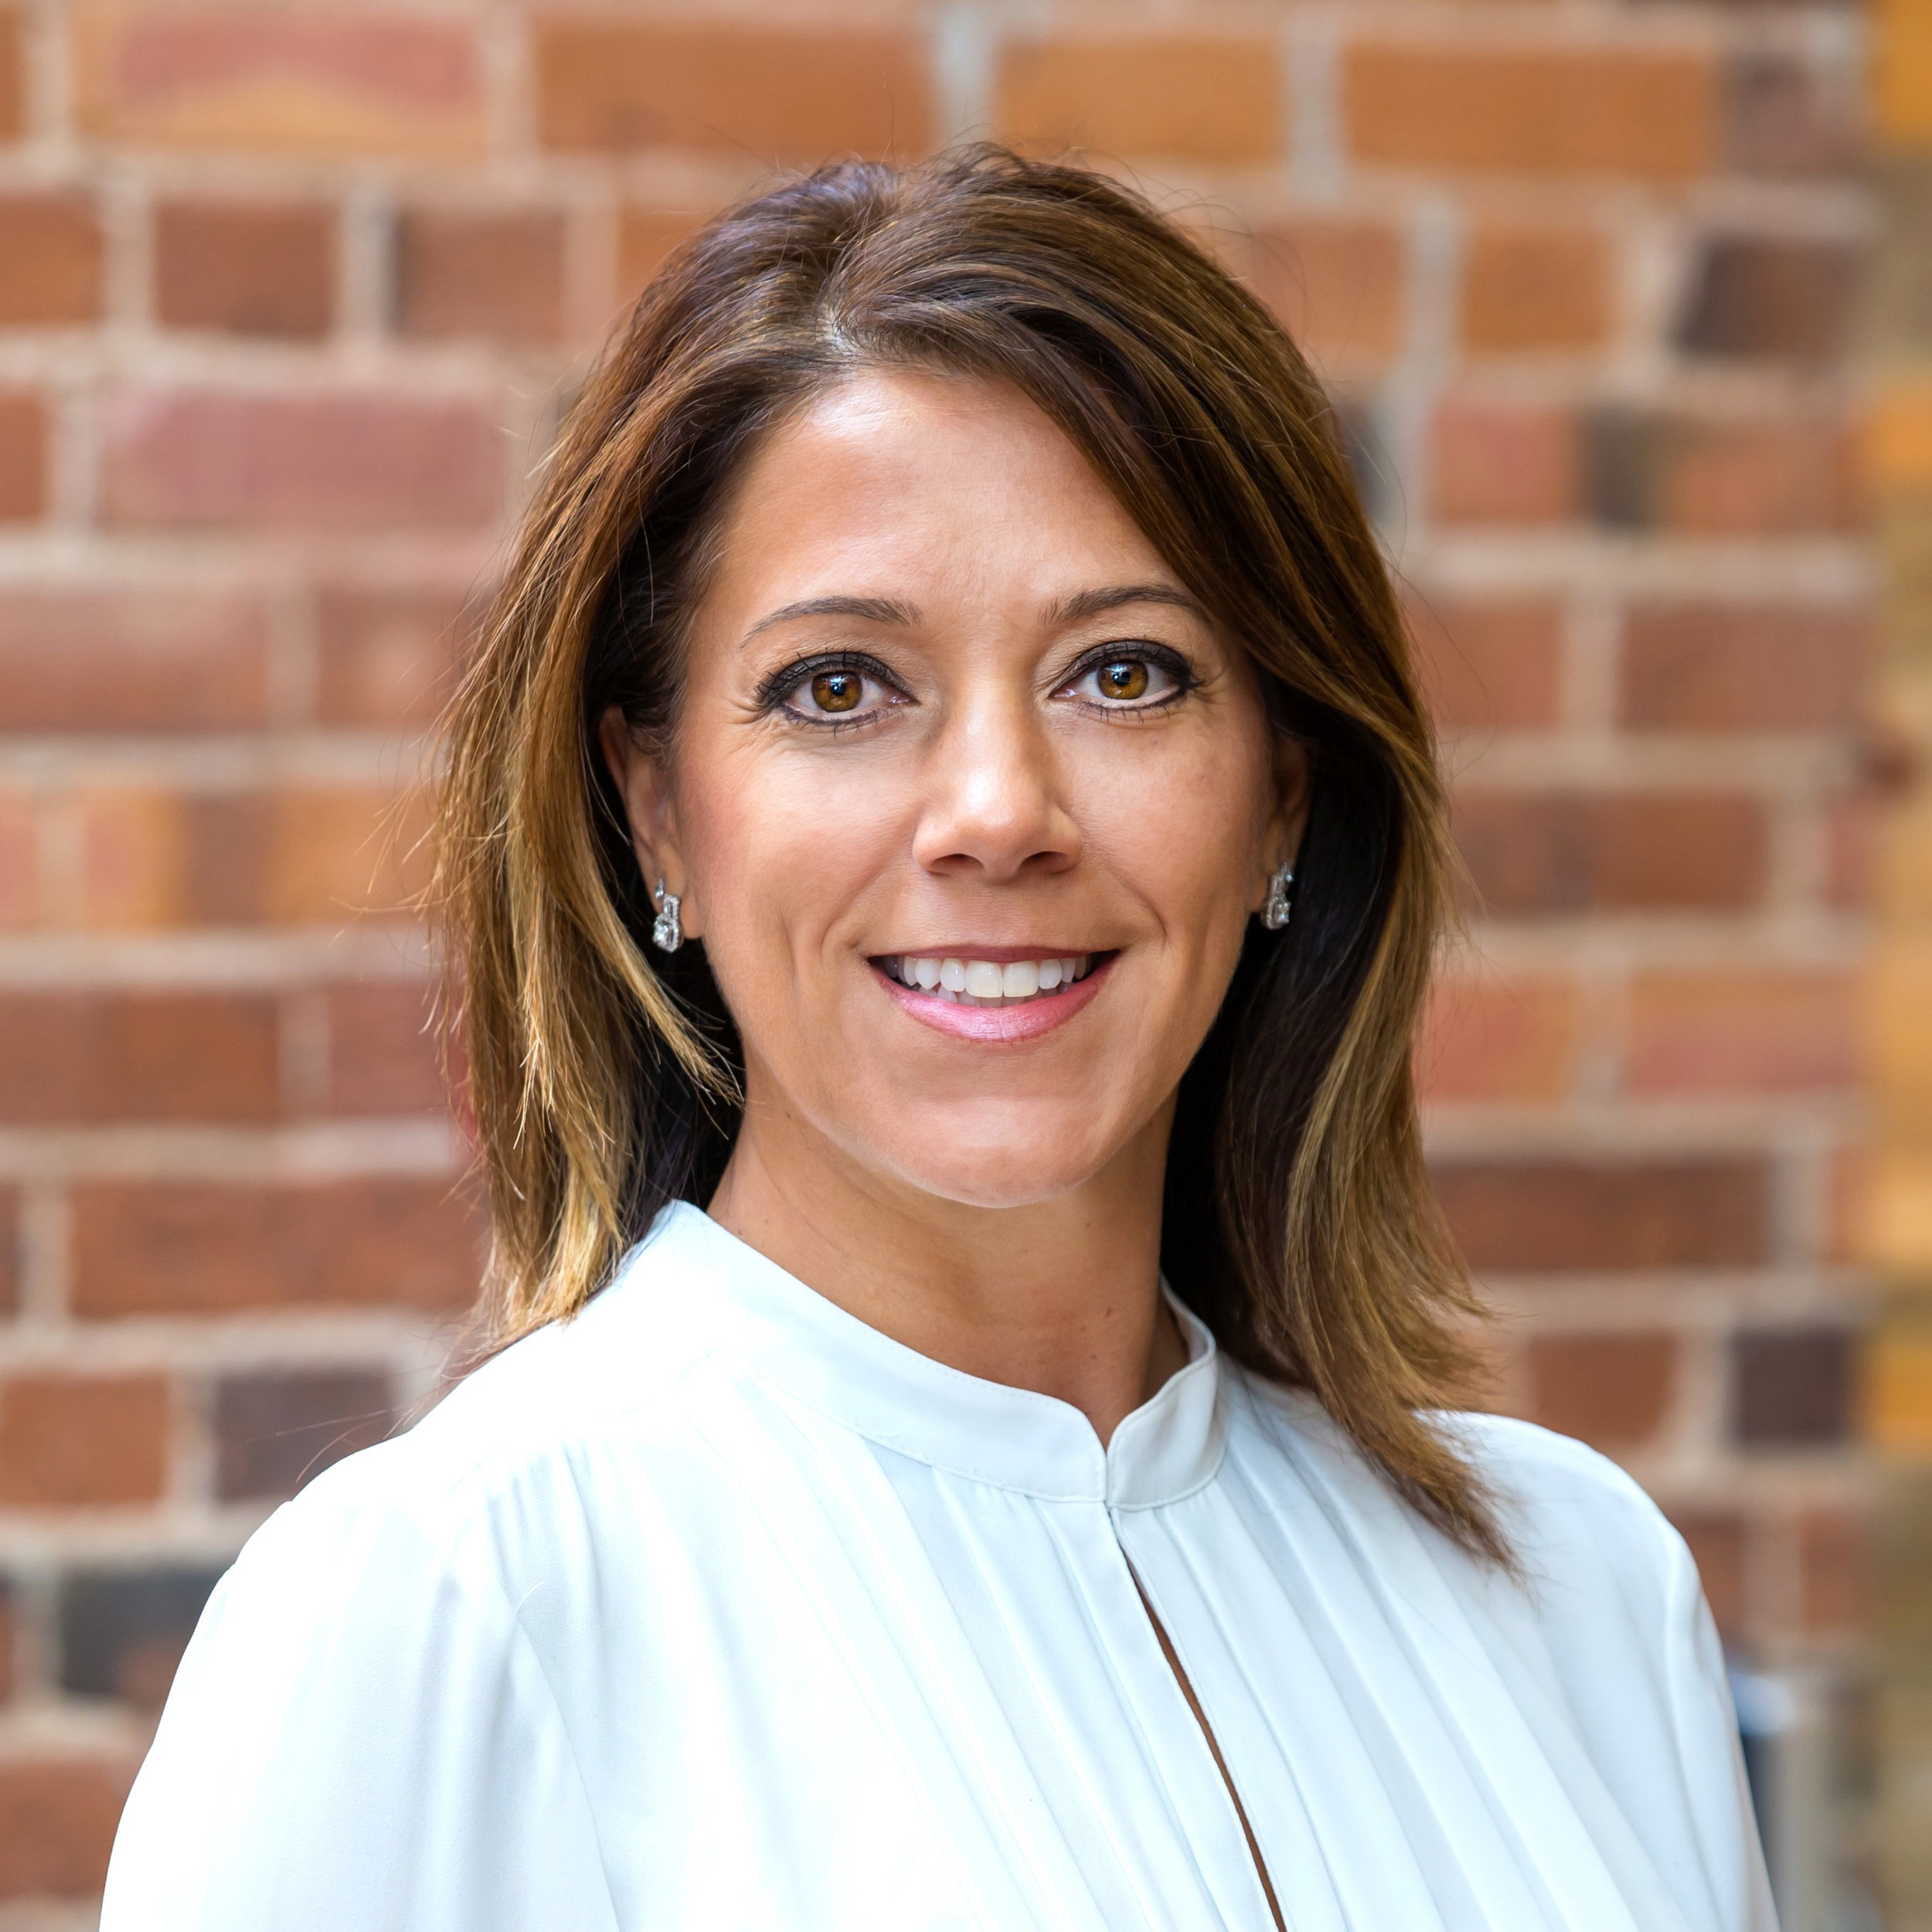 """""""At Catalyst you are encouraged to reach your potential and to achieve the highest level of success. It is a force to be reckoned with in the healthcare real estate sector.""""  ELISHA PACHECO, Catalyst Senior Vice President - Development & Leasing"""